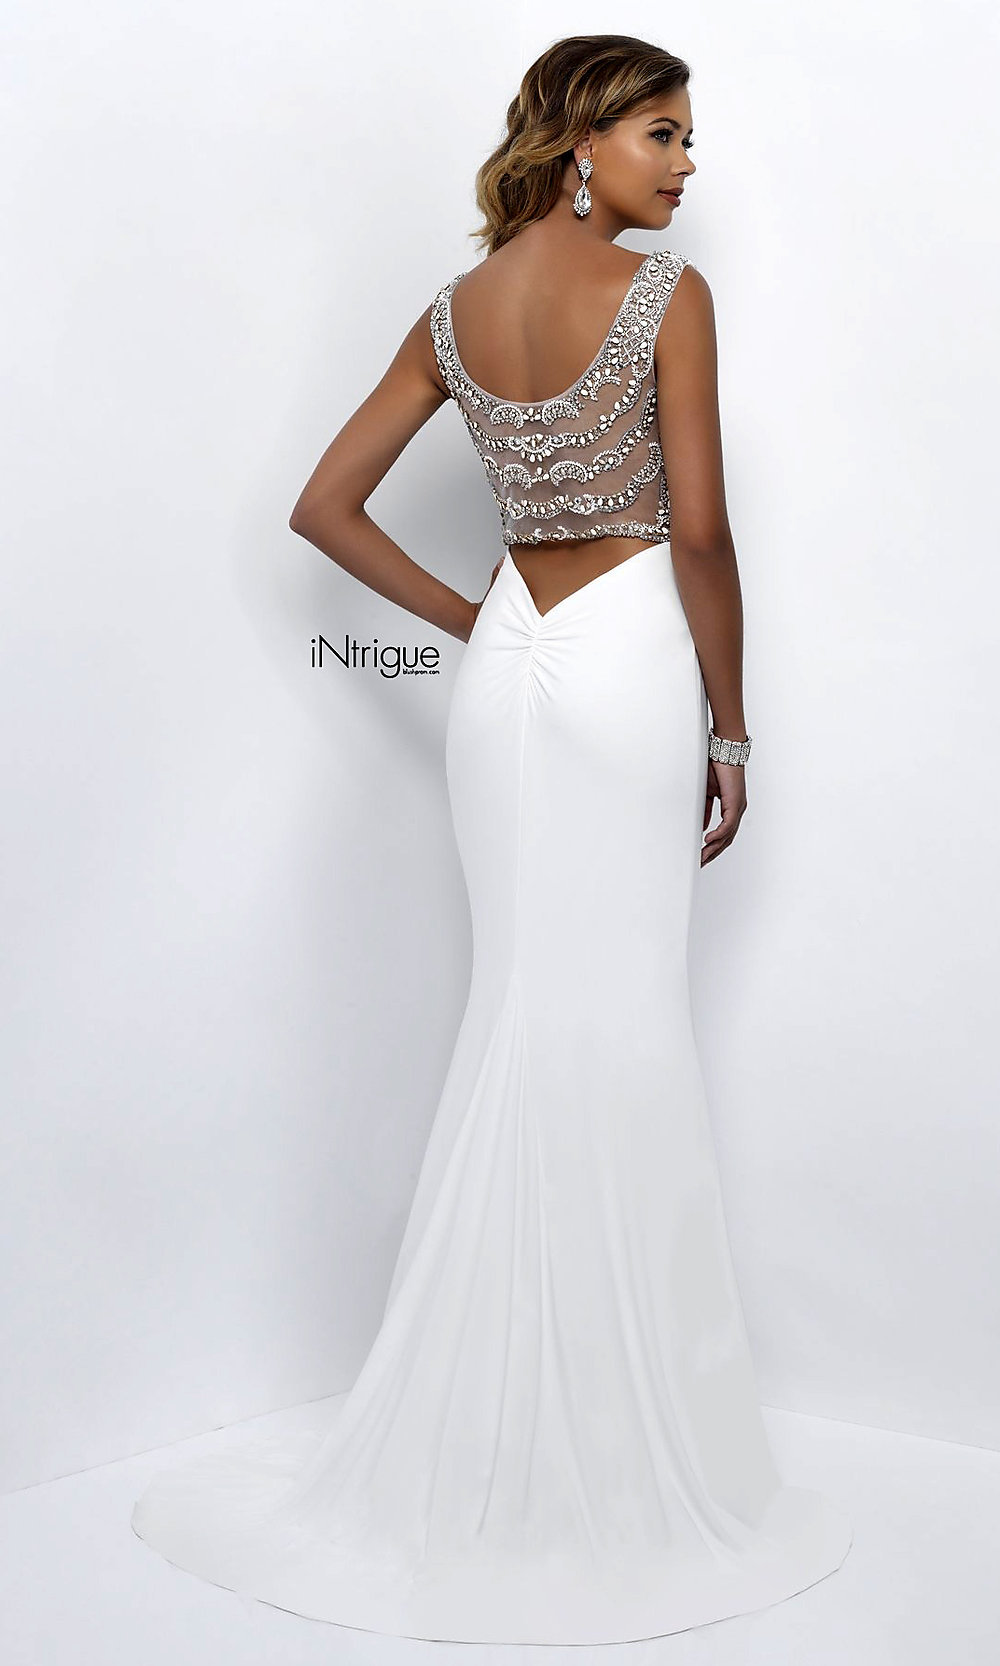 Awesome White And Silver Prom Dresses Images Styles Ideas 2018